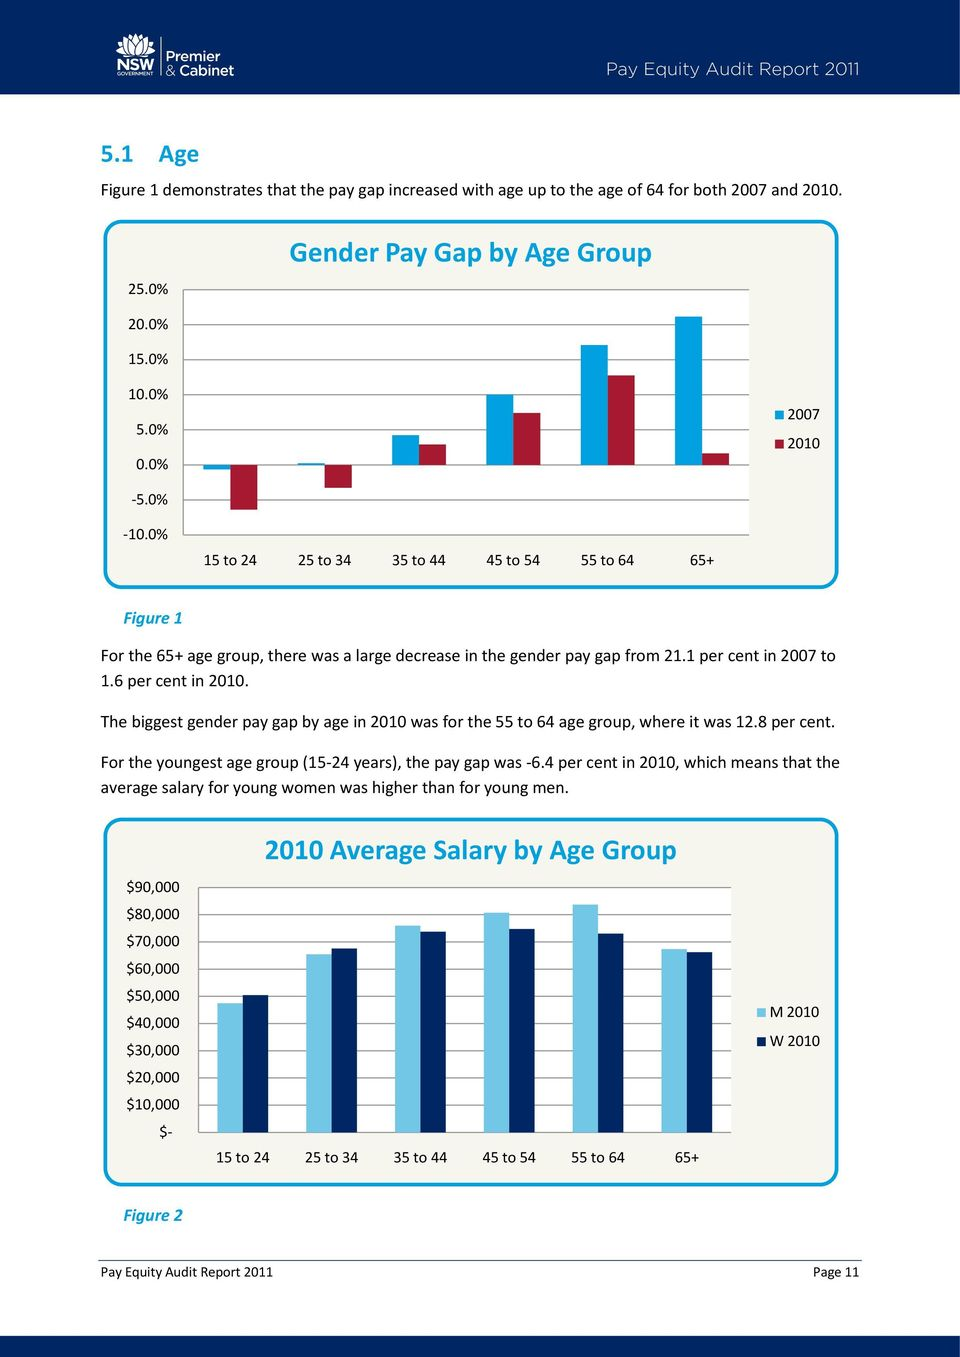 6 per cent in 2010. The biggest gender pay gap by age in 2010 was for the 55 to 64 age group, where it was 12.8 per cent. For the youngest age group (15-24 years), the pay gap was -6.